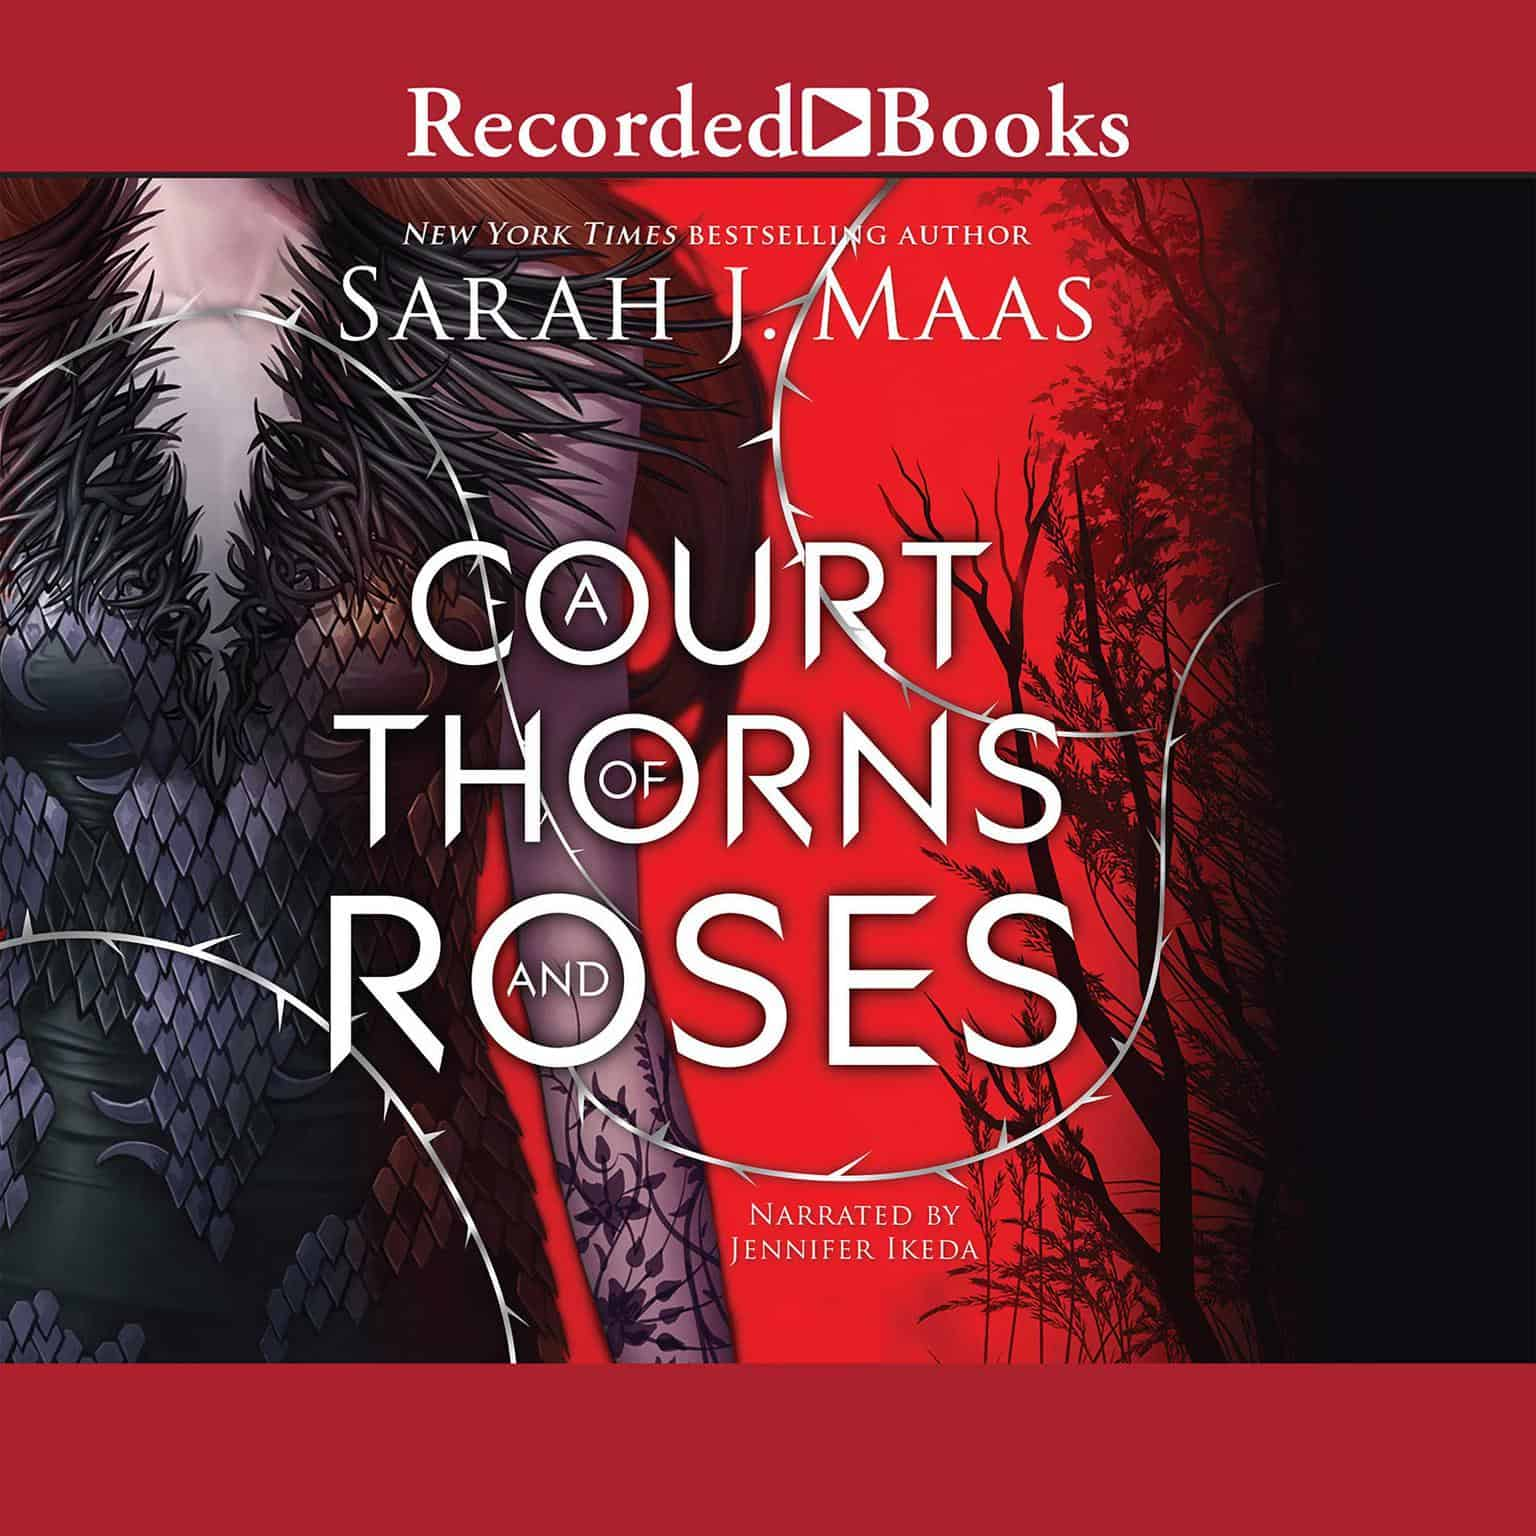 The audiobook cover of A Court of Thorns and Roses, showing the torso of a white woman with brown hair in a black dress covered in fur and scales. Behind her is a red background with black trees.